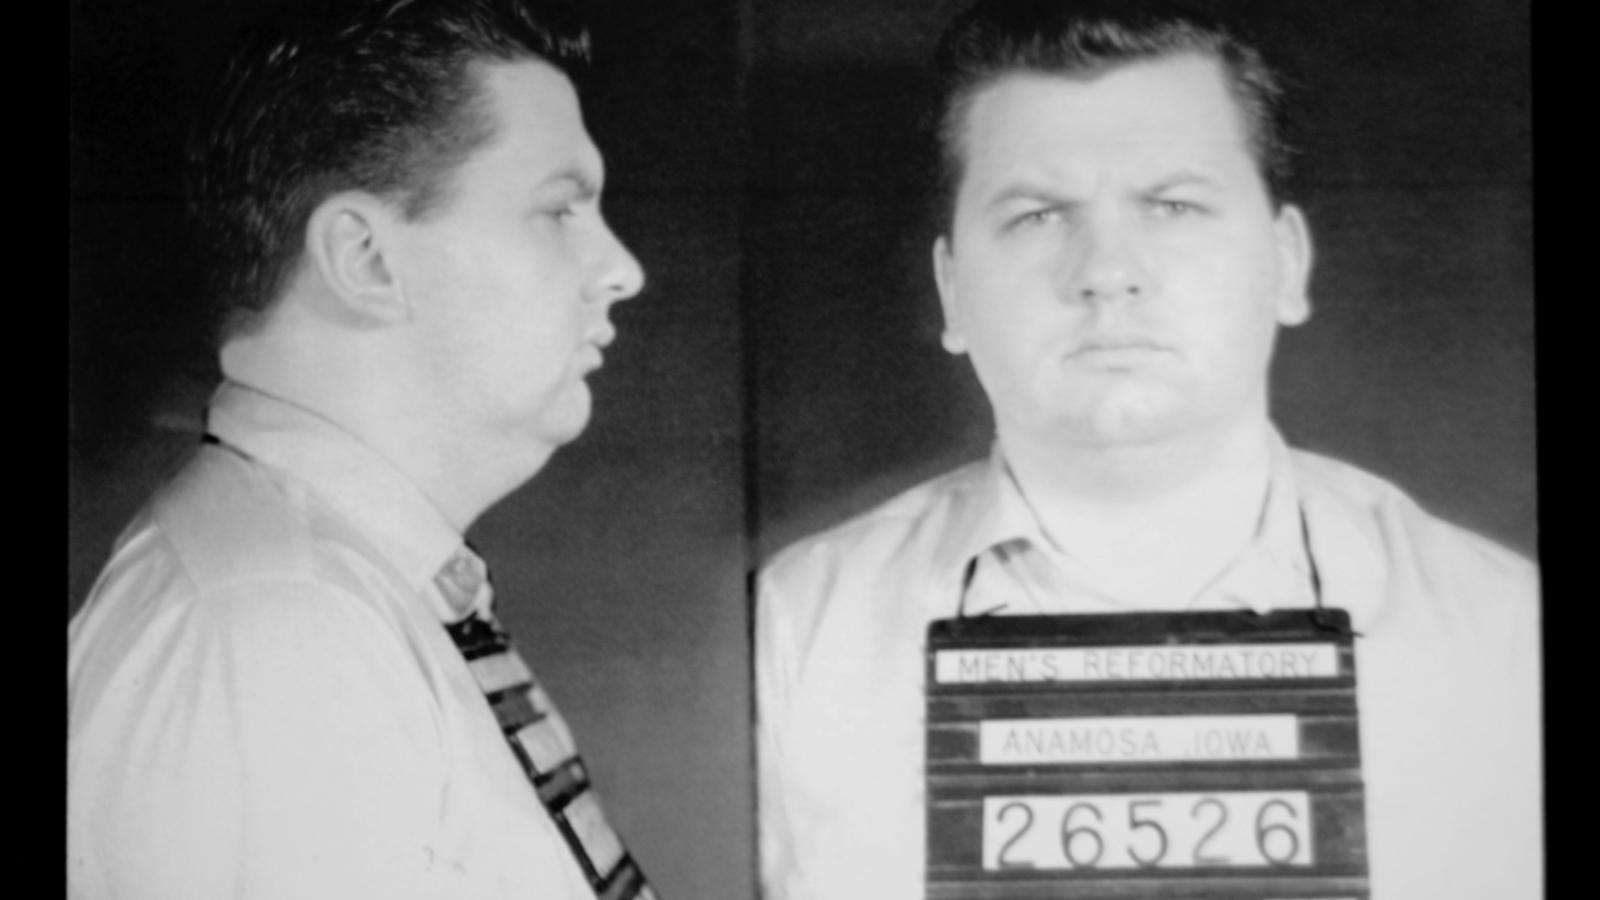 an overview of capital punishment with reference to john wayne gacy Serial killers over the centuries: seventeen murderers the california supreme court abolished capital punishment in john wayne gacy, jr.